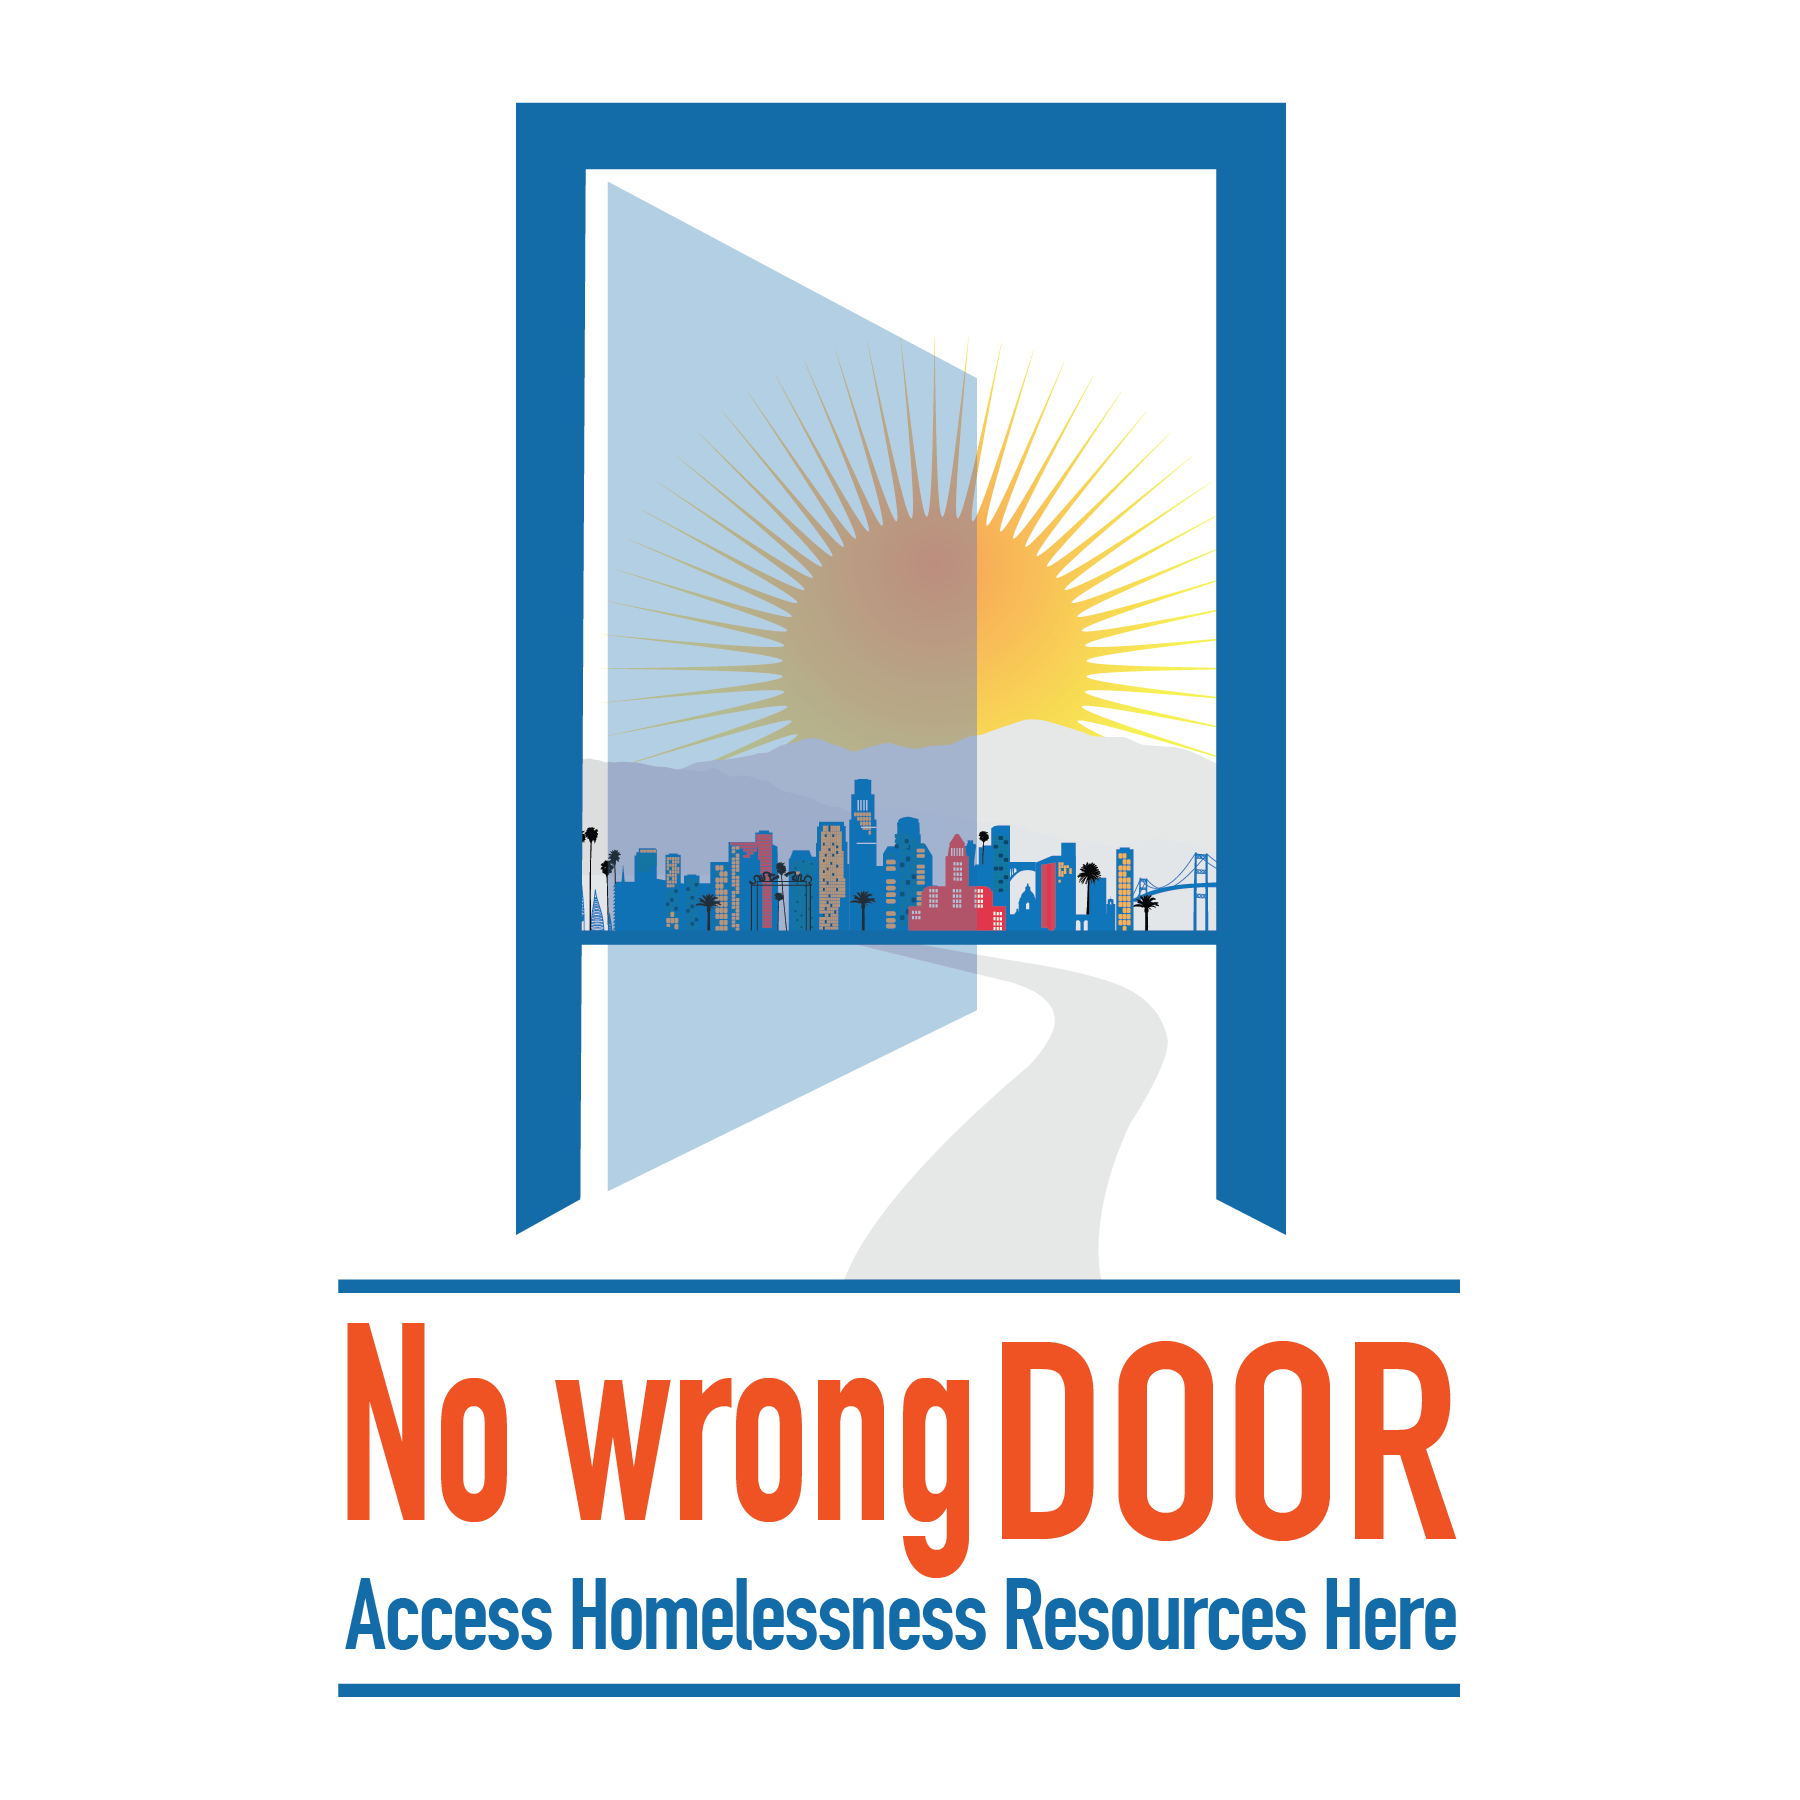 No Wrong Door. Access homelessness resources here